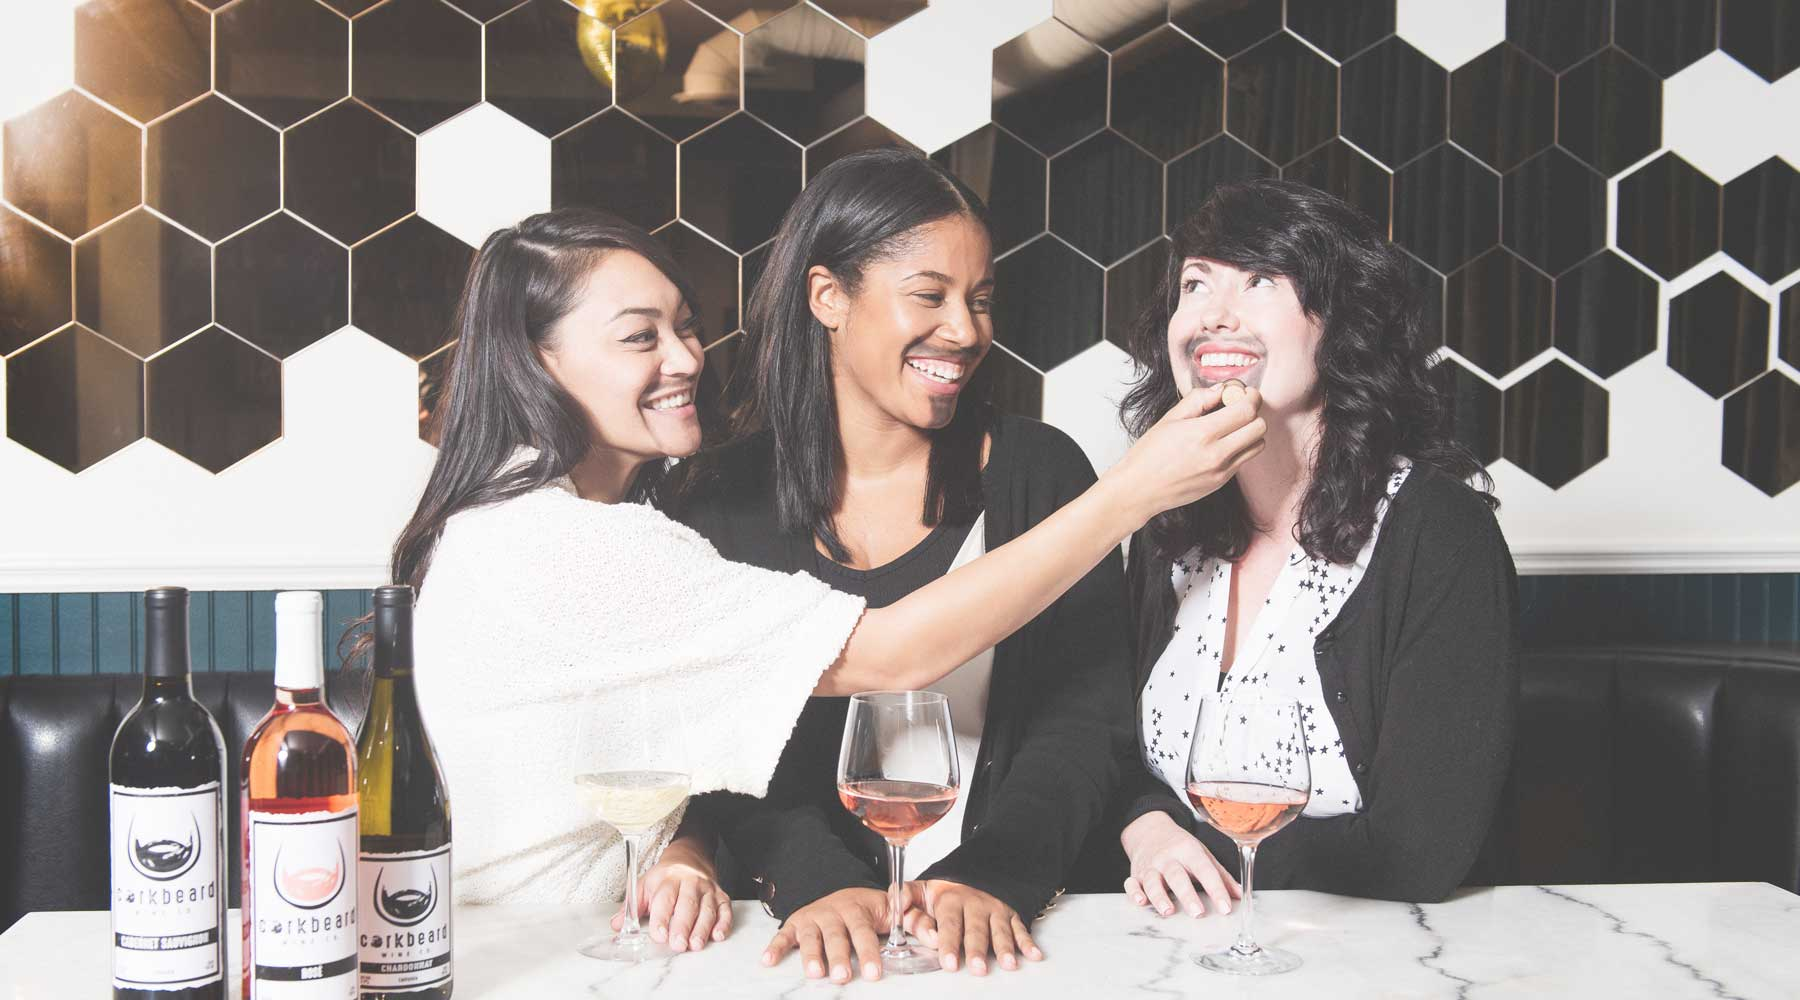 Corkbeard Wine Co. | Just Wine